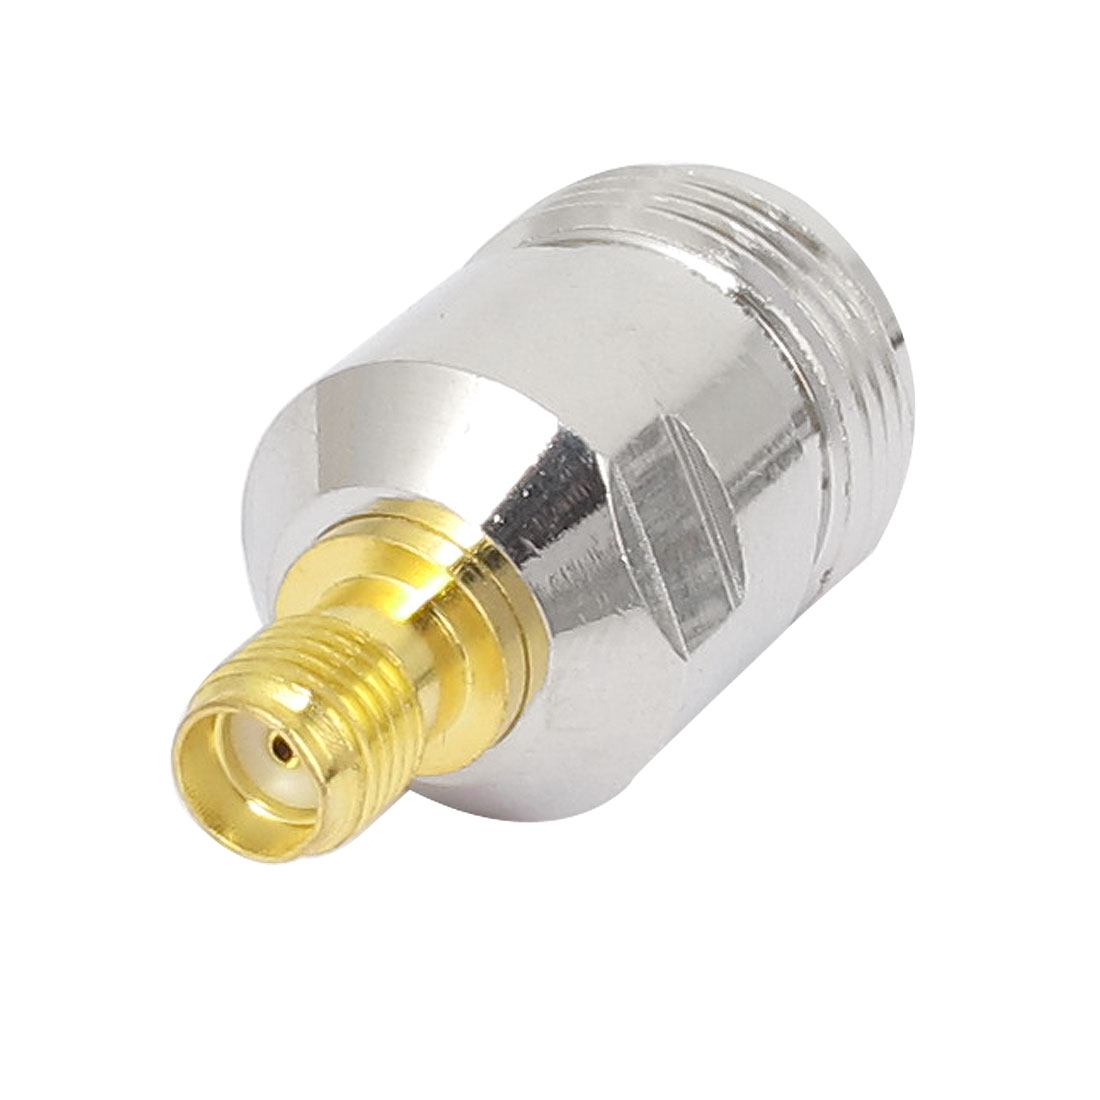 N Female Jack to SMA Female Plug Straight RF Connector Adapter